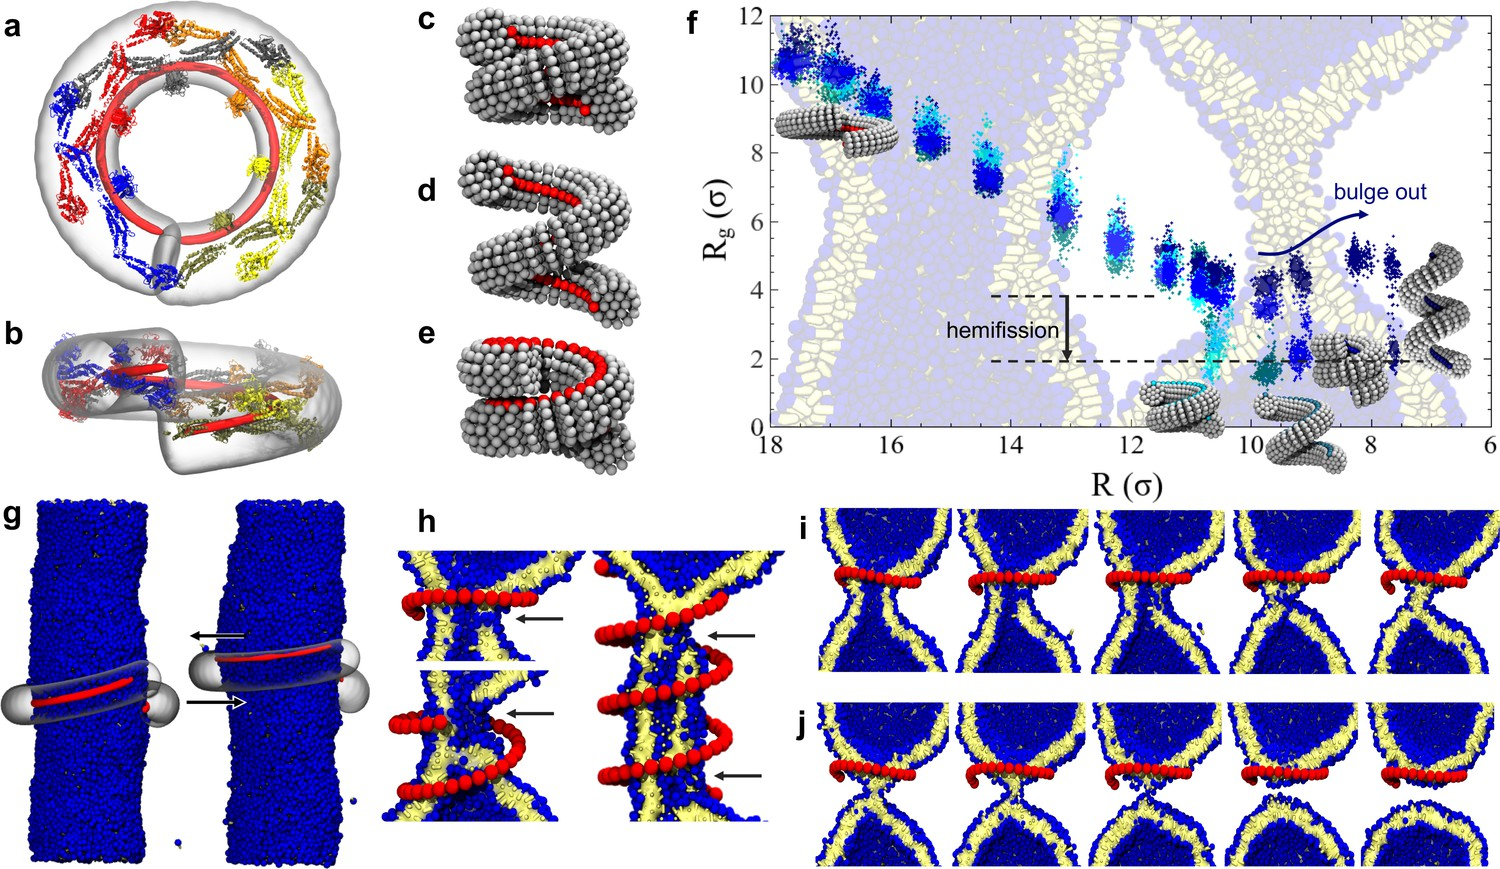 The role of scaffold reshaping and disassembly in dynamin driven